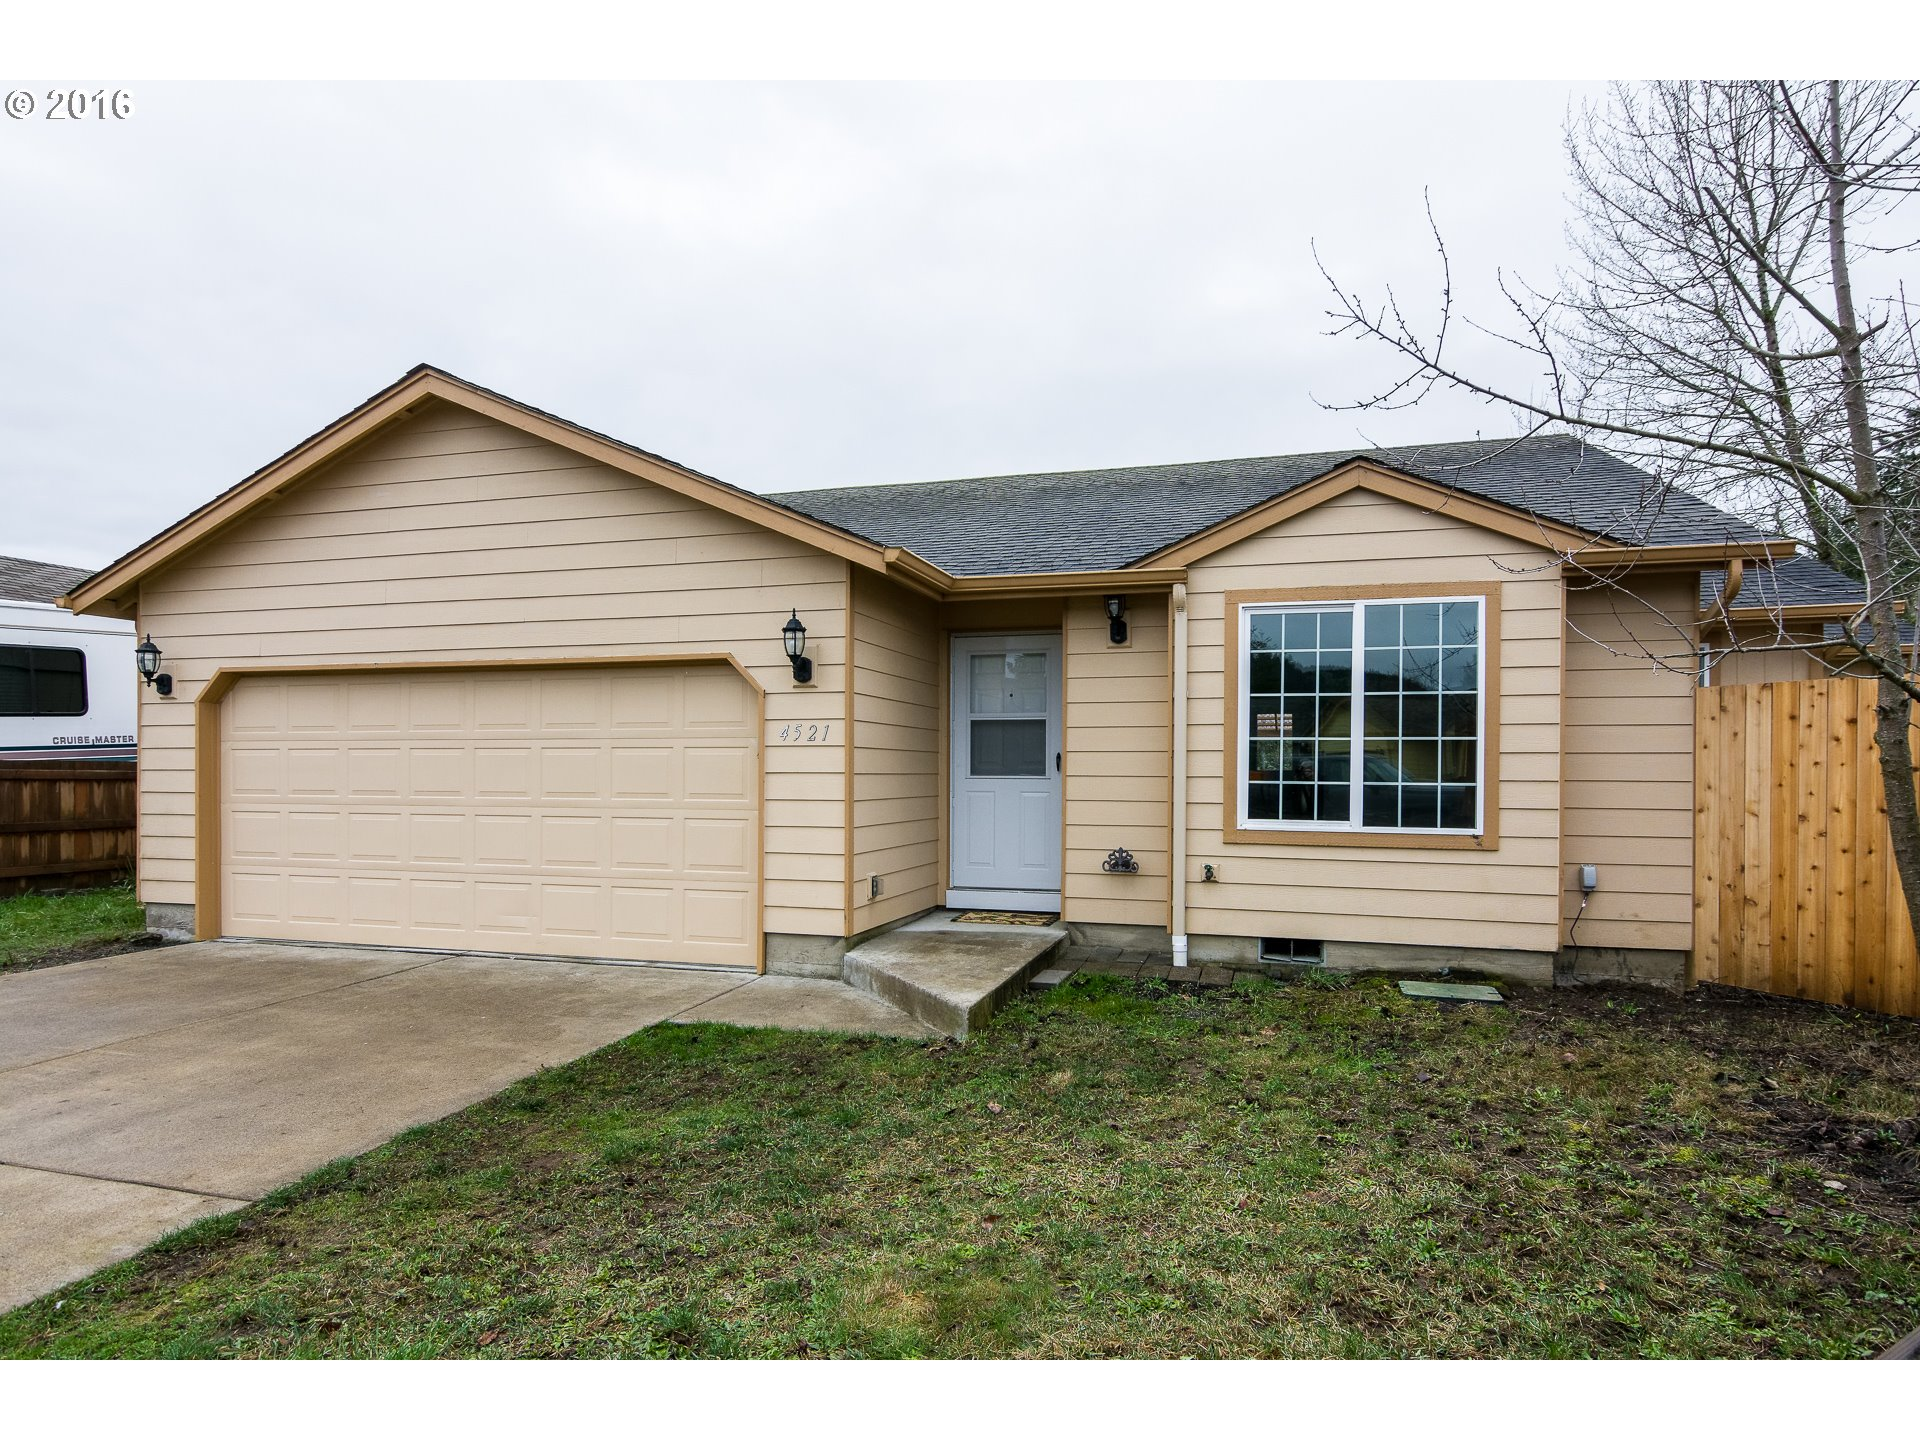 4521 Airport Ln, Sweet Home, OR